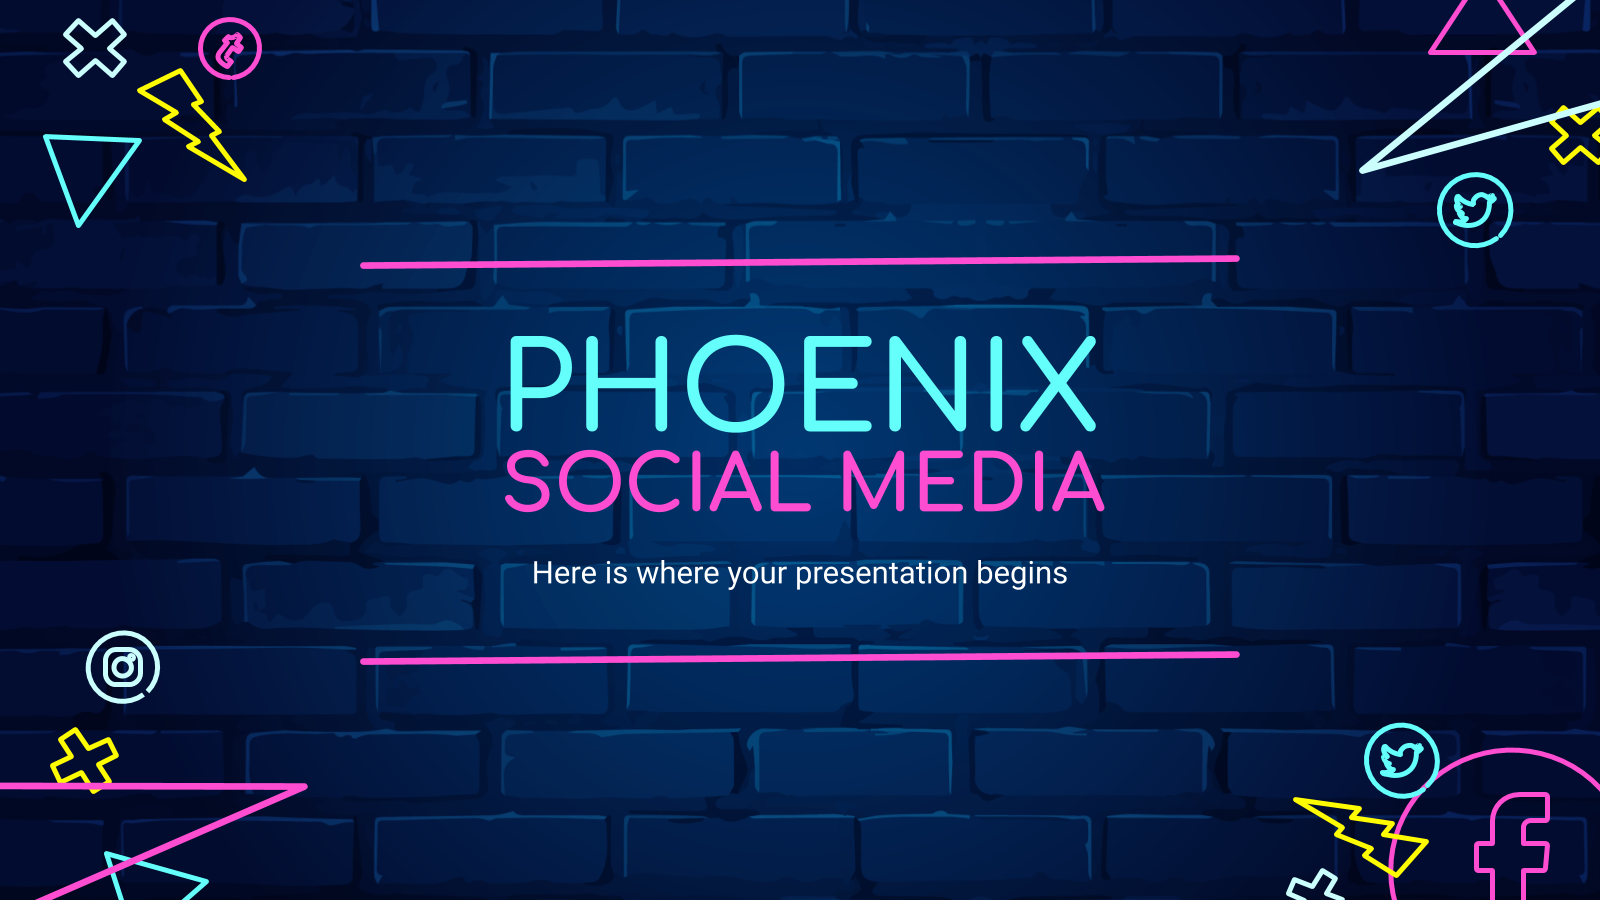 Phonix social Media presentation template